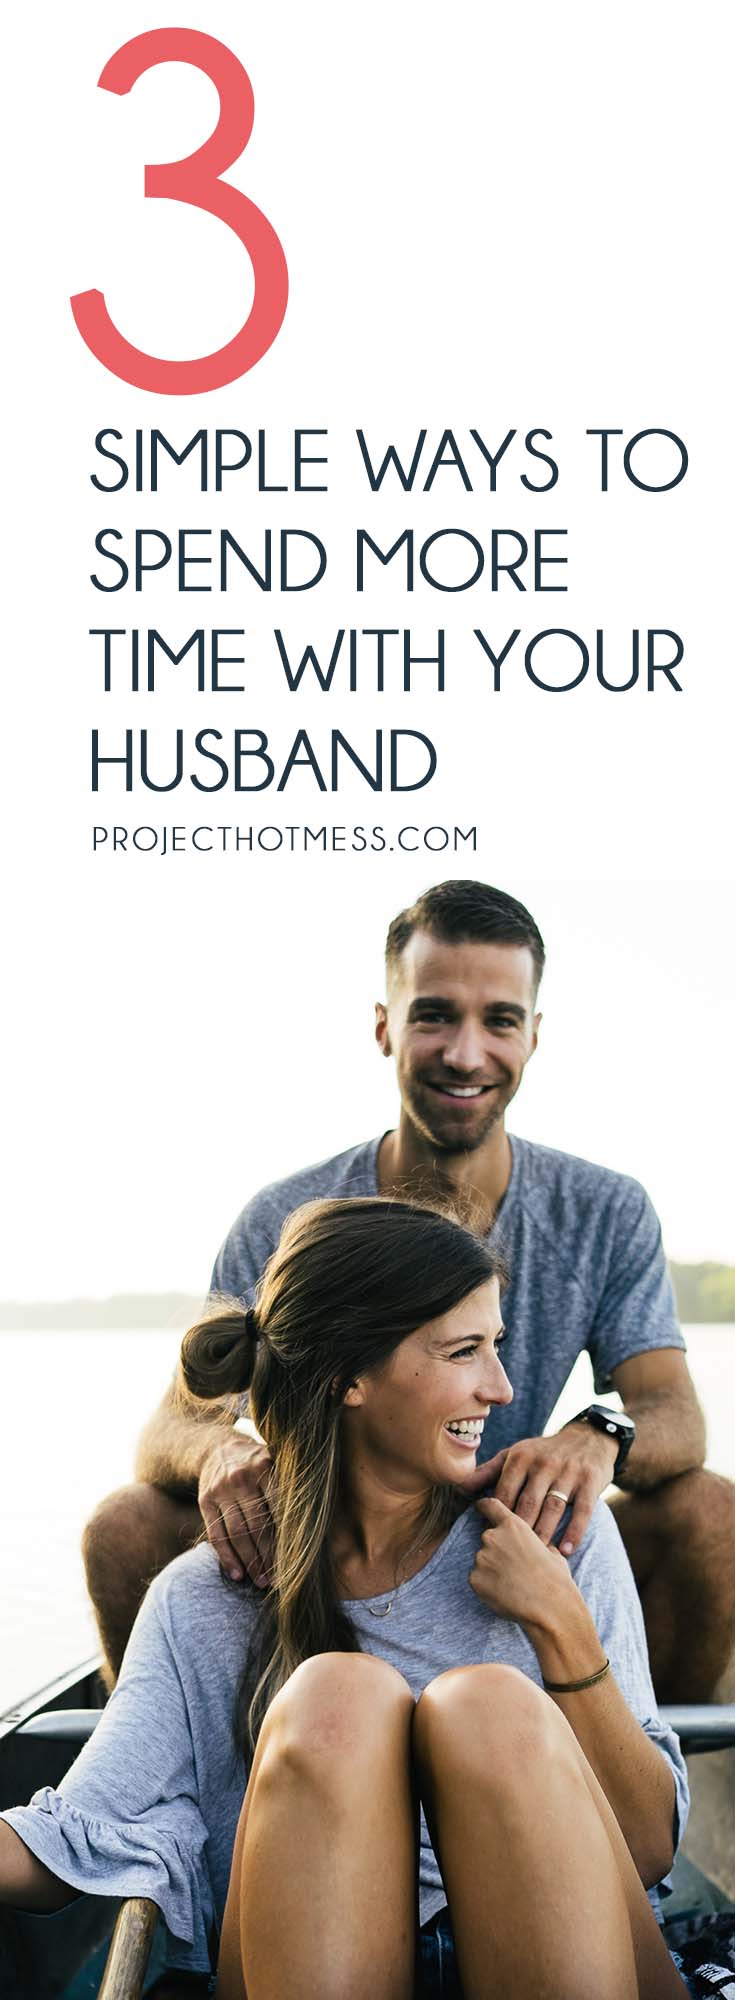 If you want to spend more time with your husband, it doesn't have to be as complicated as we make it. Yes, our lives are busy, but we can make it happen. Relationships | Marriage | Partner | Marriage Advice | Marriage Goals | In Love | Love | Marriage Problems | Spice Up Your Marriage | Marriage Ideas | Happy Marriage | Relationship Goals | Relationship Advice | Relationship Tips